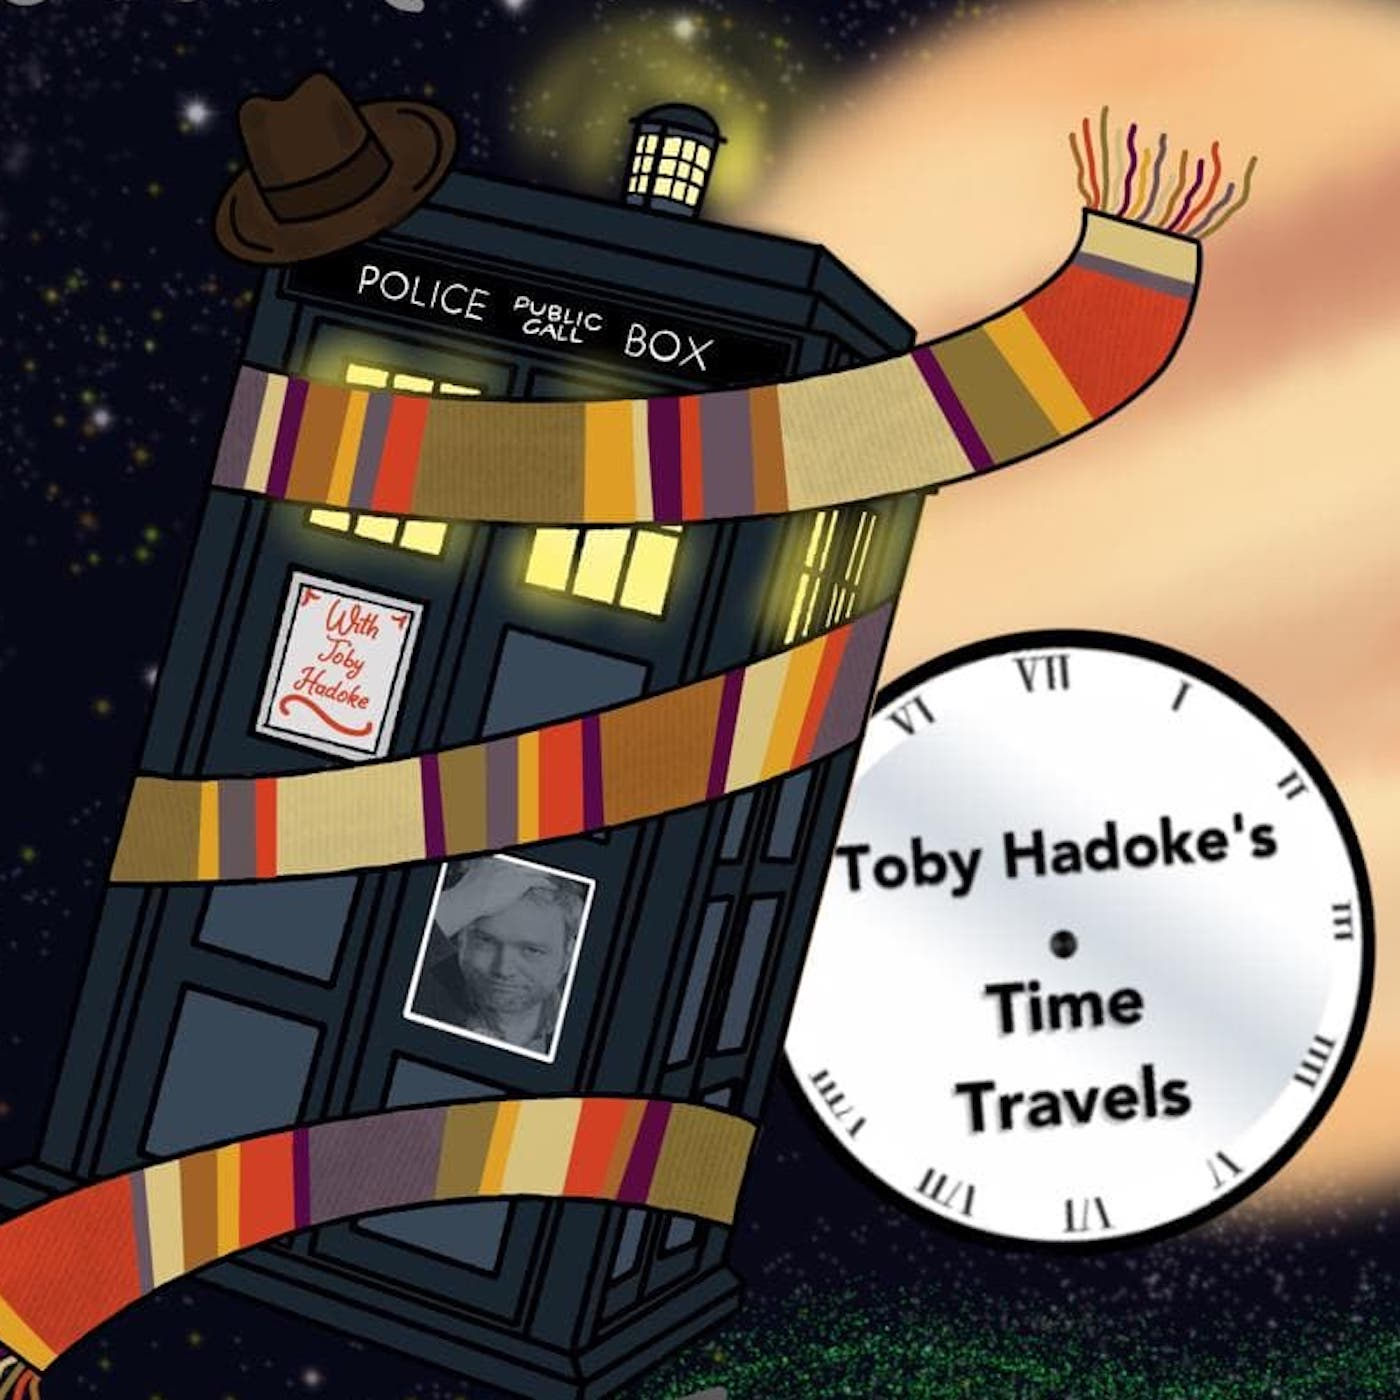 Toby Hadoke's Time Travels (c) Toby Hadoke Doctor Who podcast scarf tardis